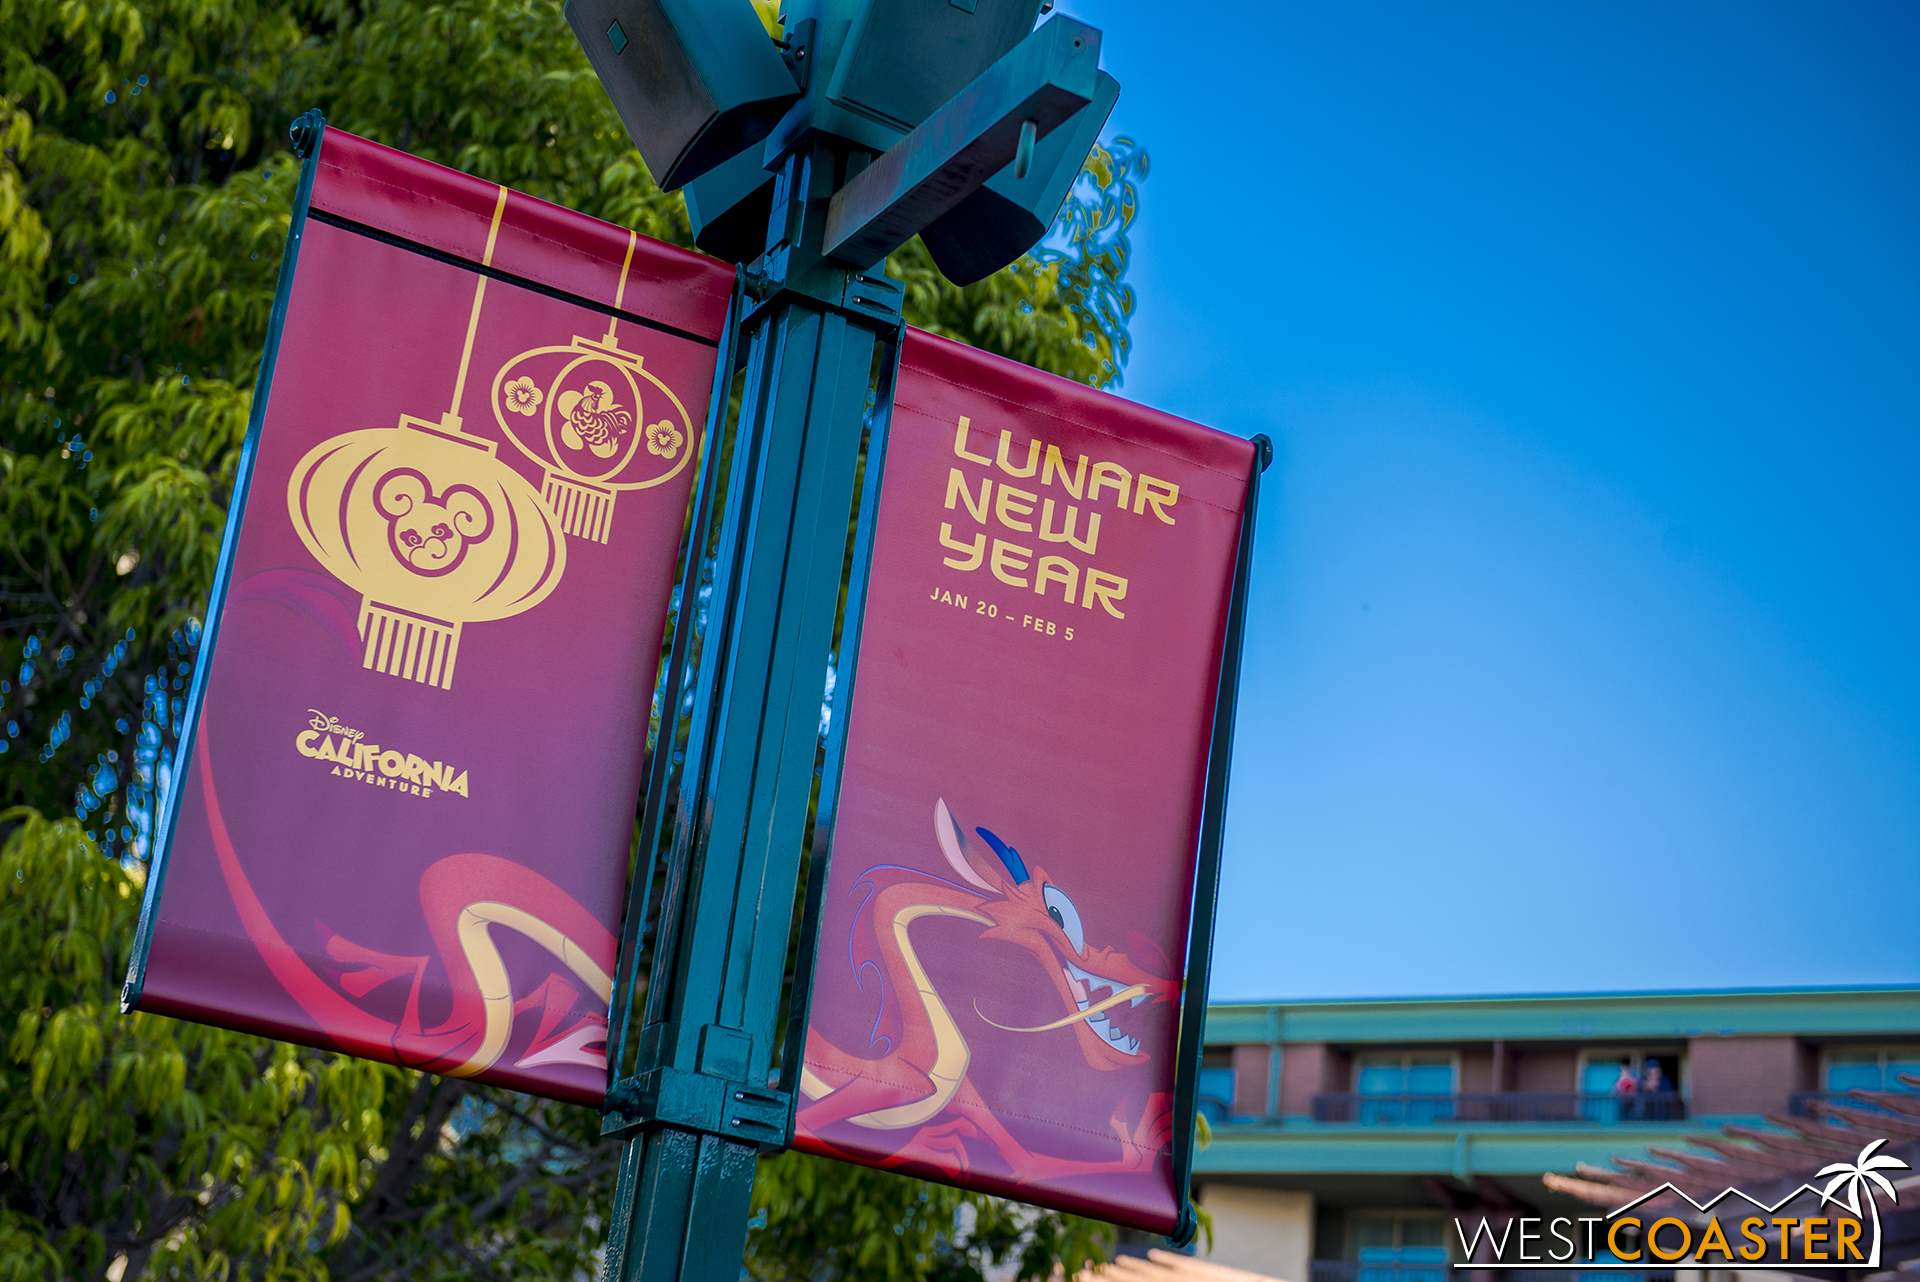 Banners are up for the Lunar New Year celebration at Disney California Adventure, running Friday, January 20 - (Super Bowl) Sunday, February 5.